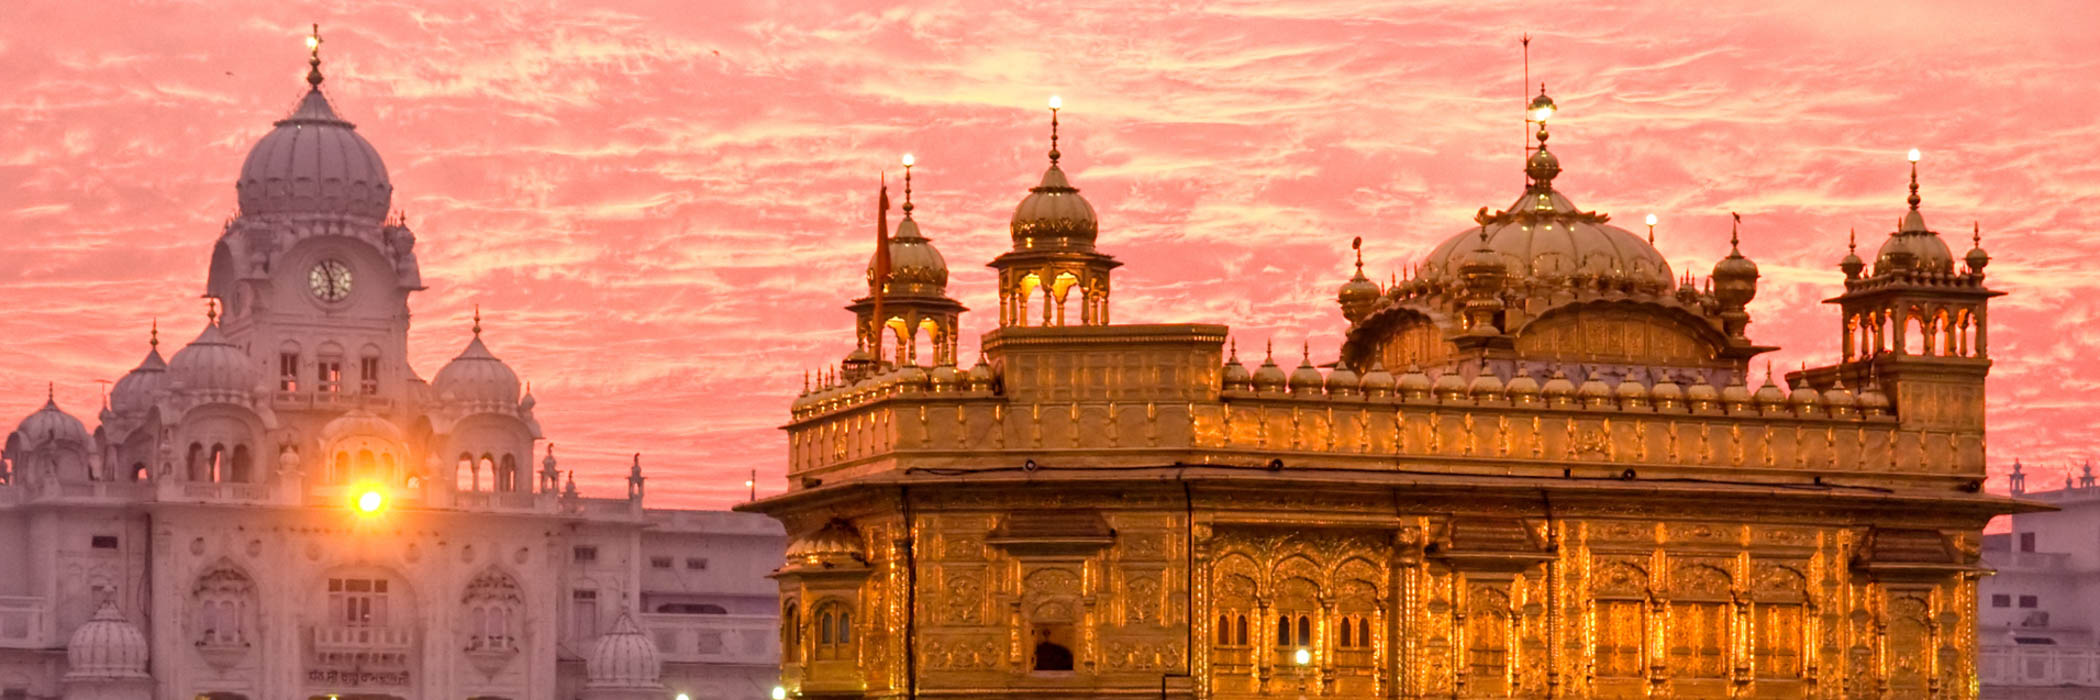 Golden Temple at sunset, Amritsar, Punjab, India.